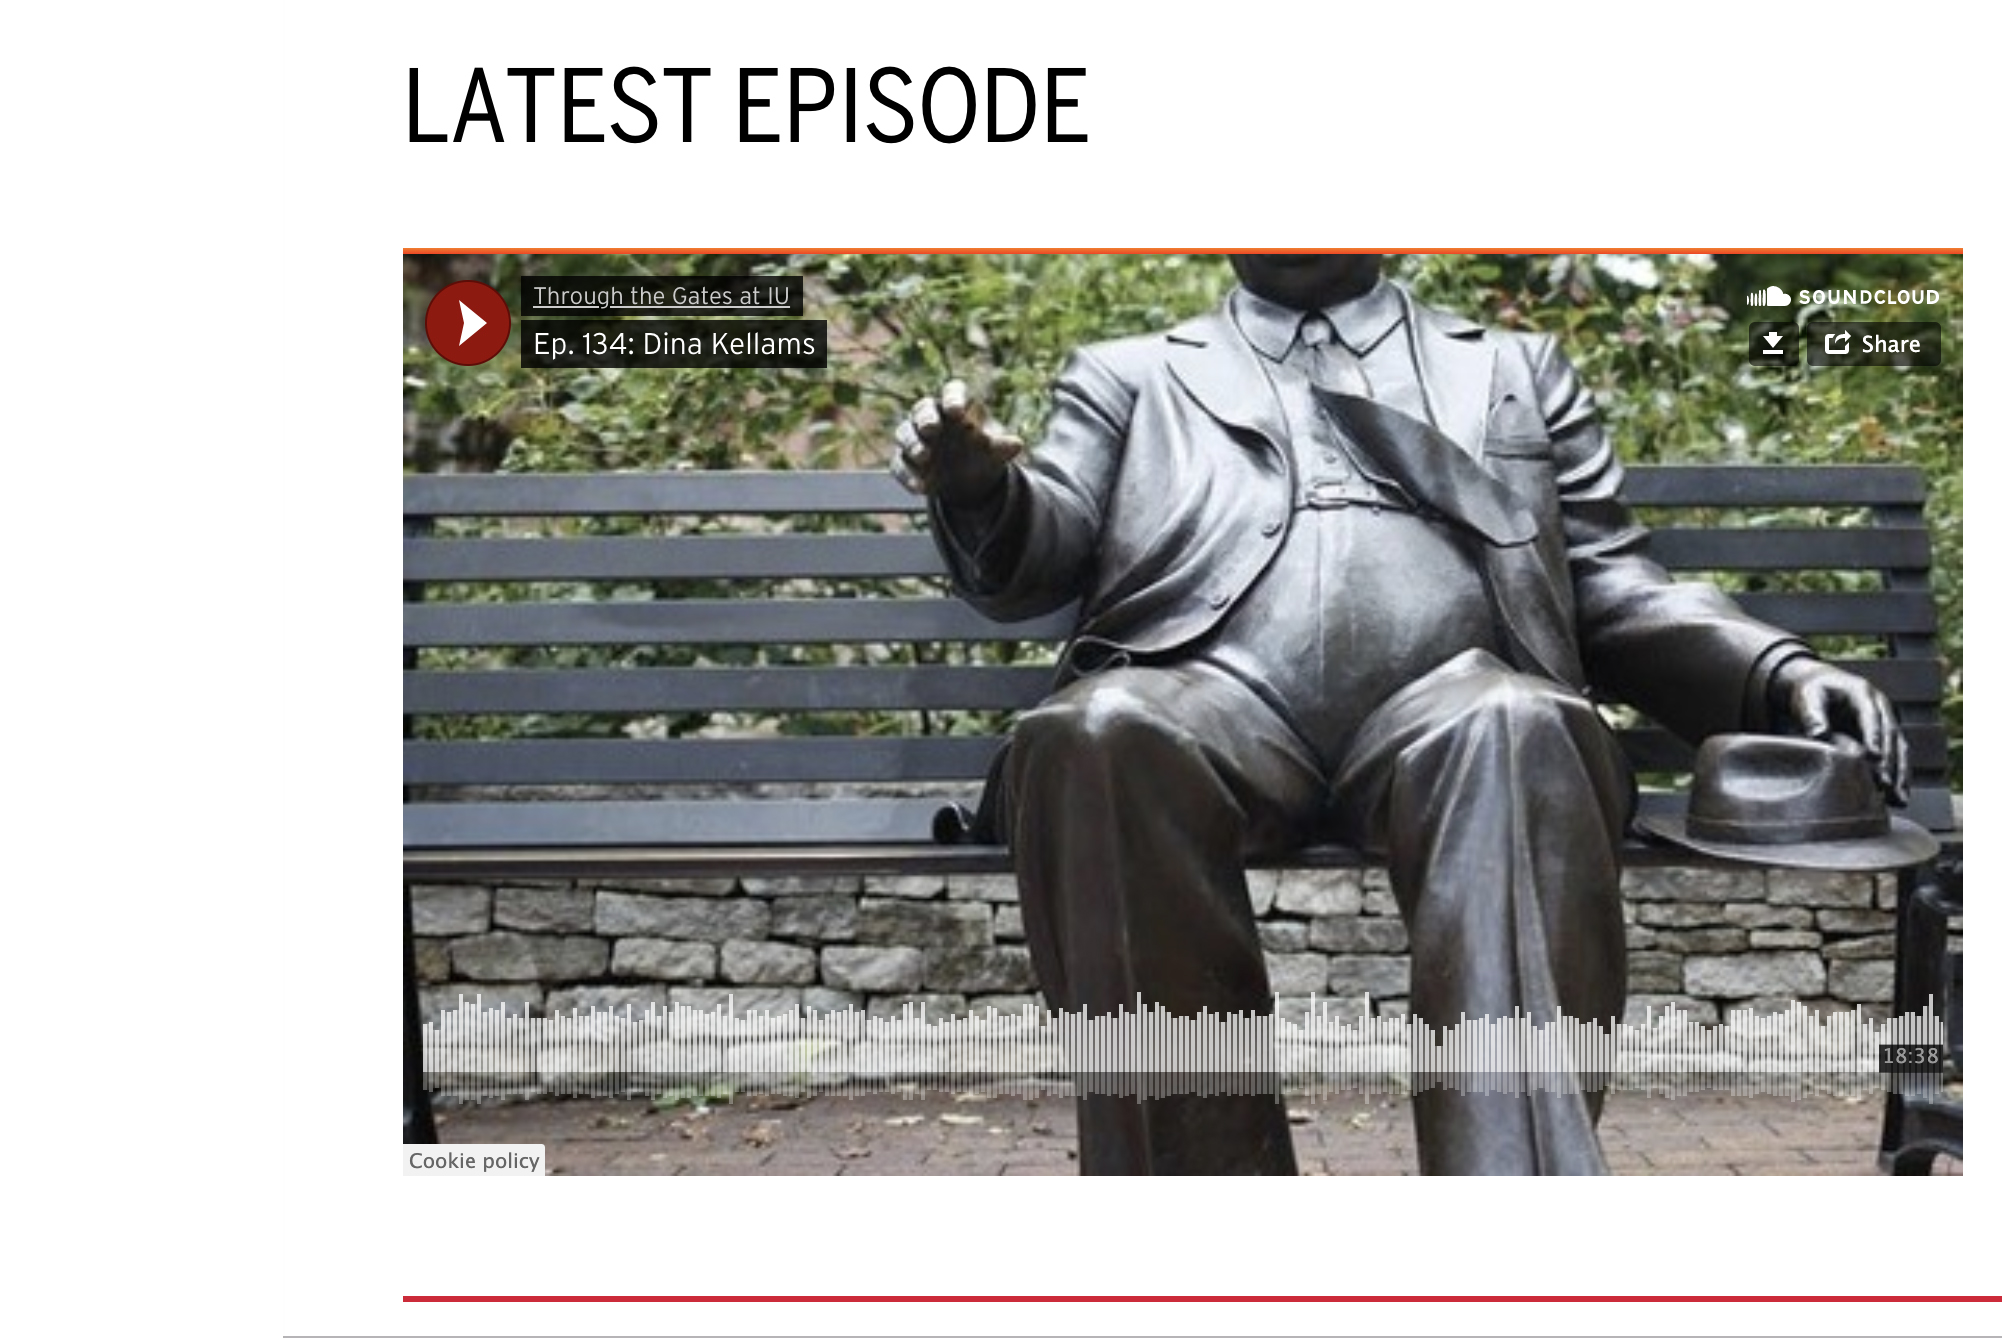 A screen shot taken of the introduction graphic for a SoundCloud Podcast. The image is a statue of a man sitting on a bench, it is Herman B Wells. Over the top are words that share that this is episode 143.